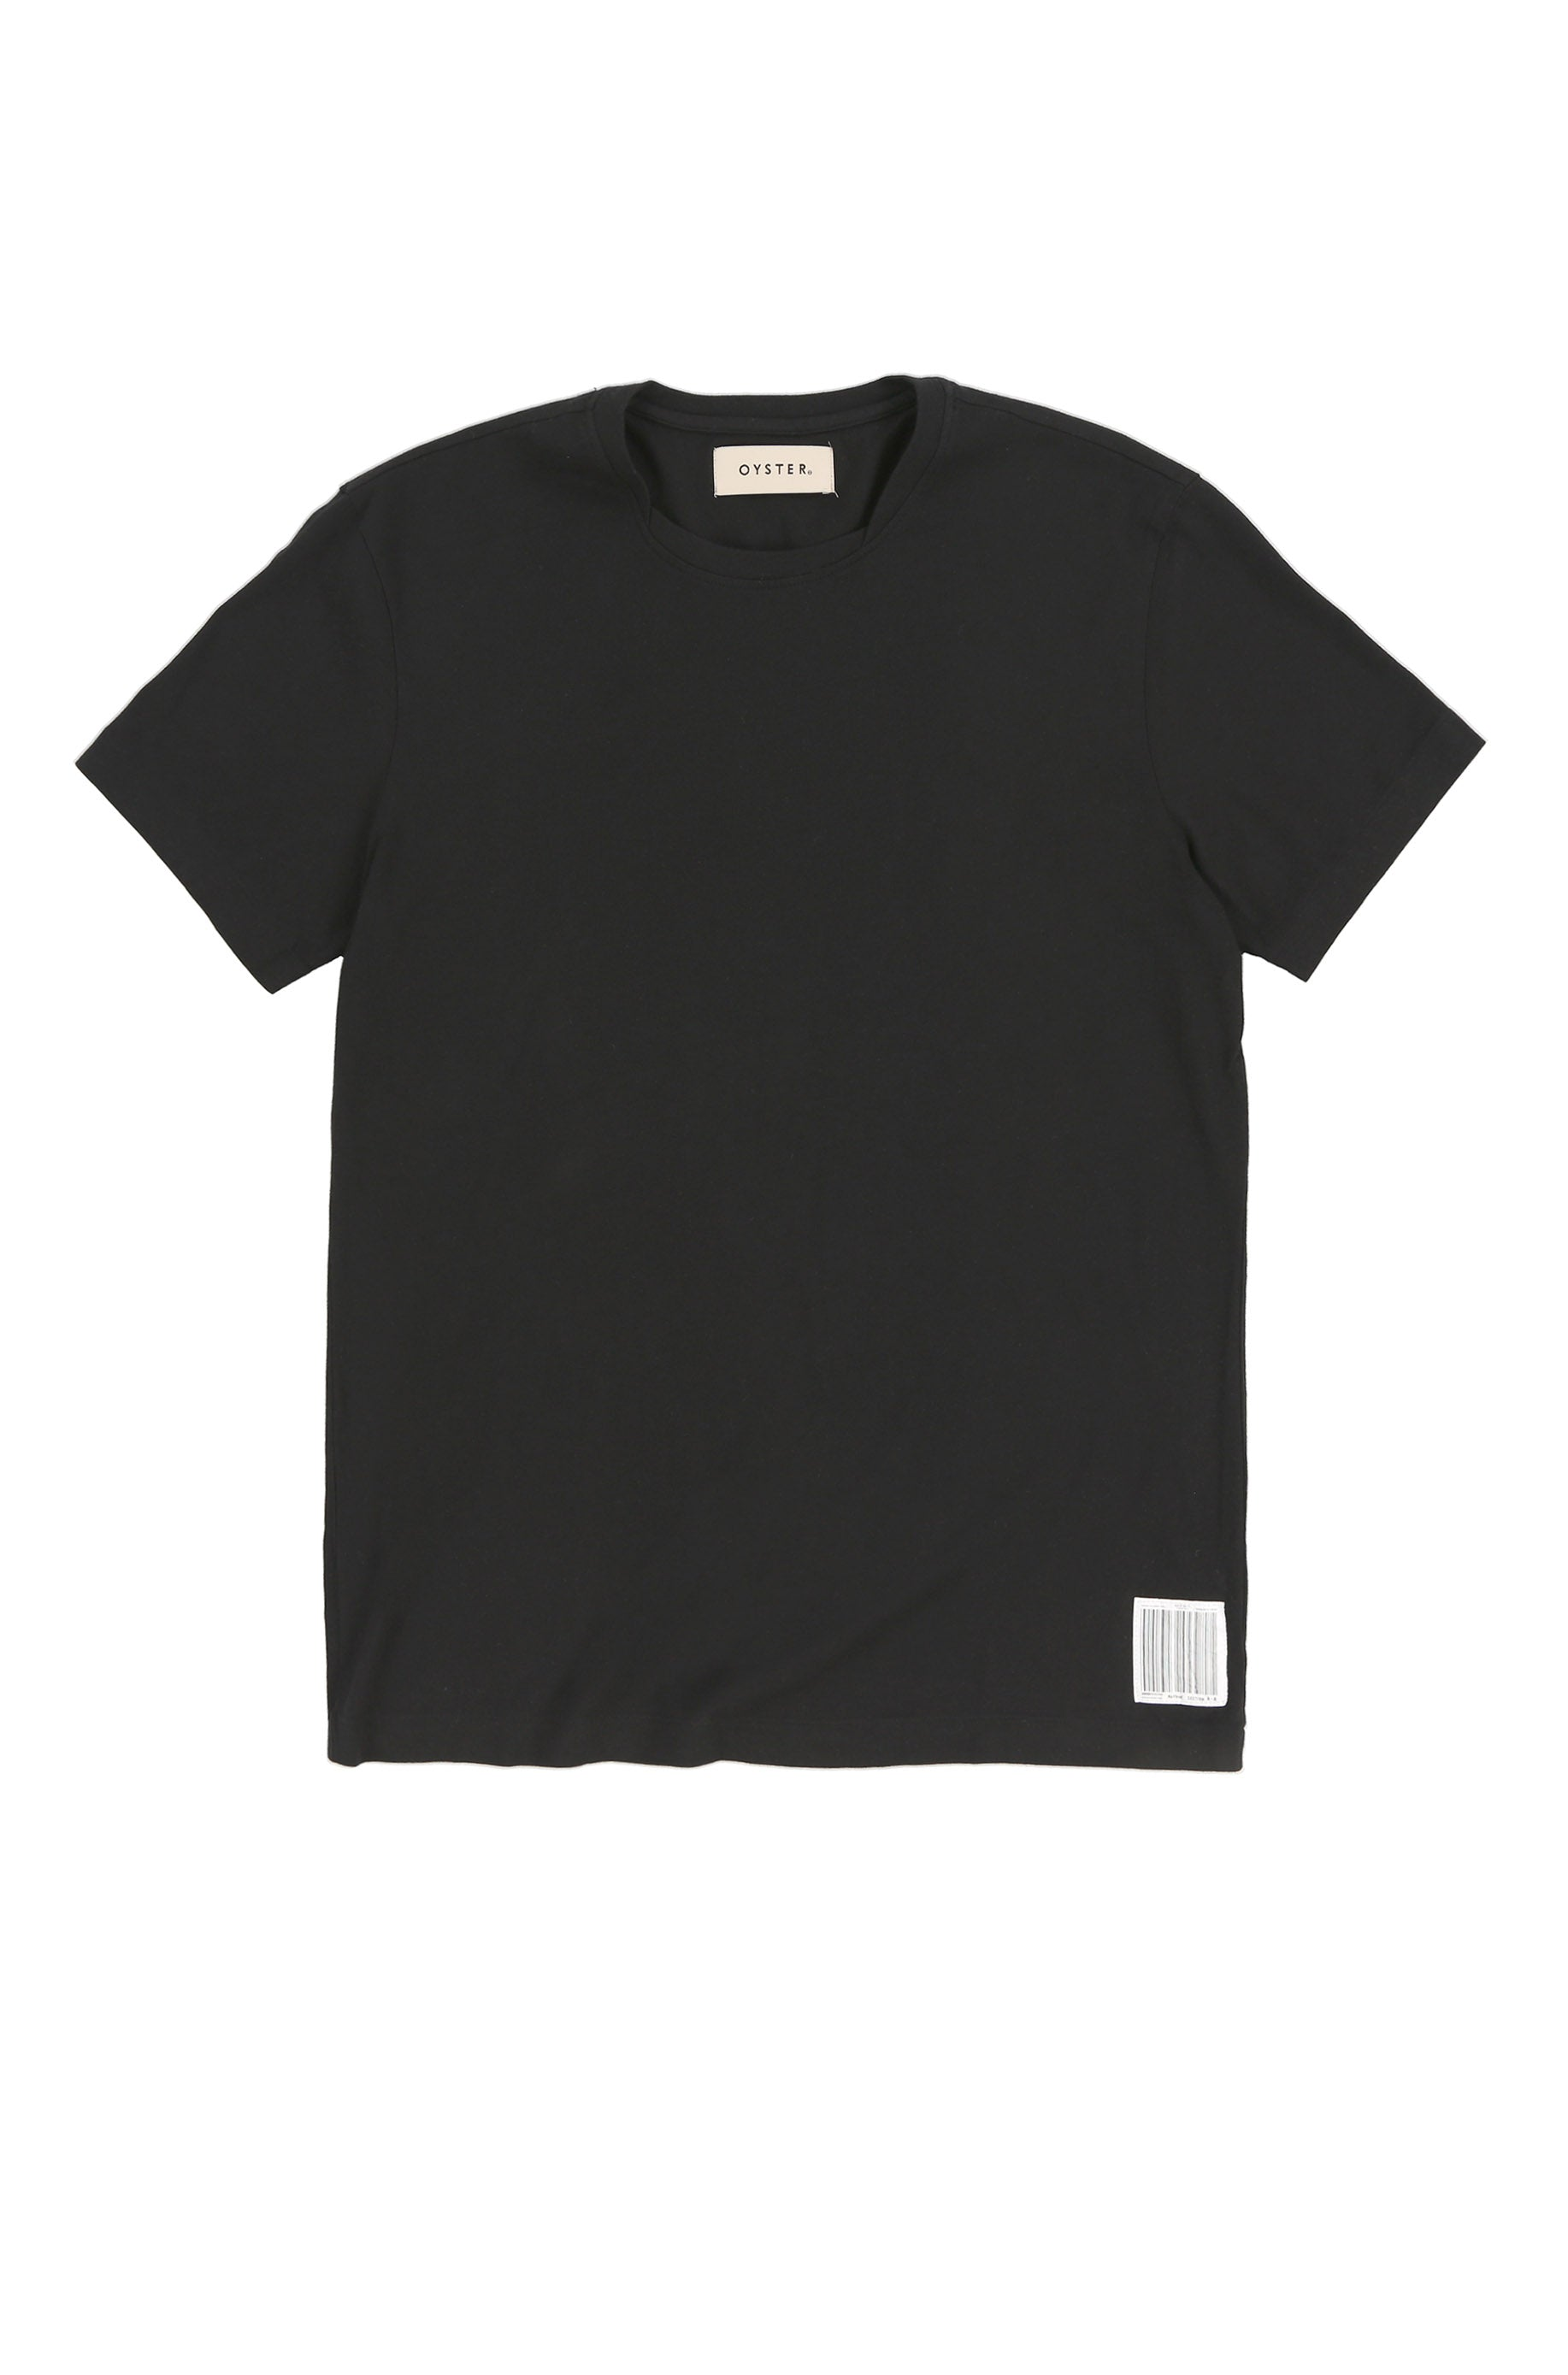 OYSTER NECK LAYERING TEE (BLACK)